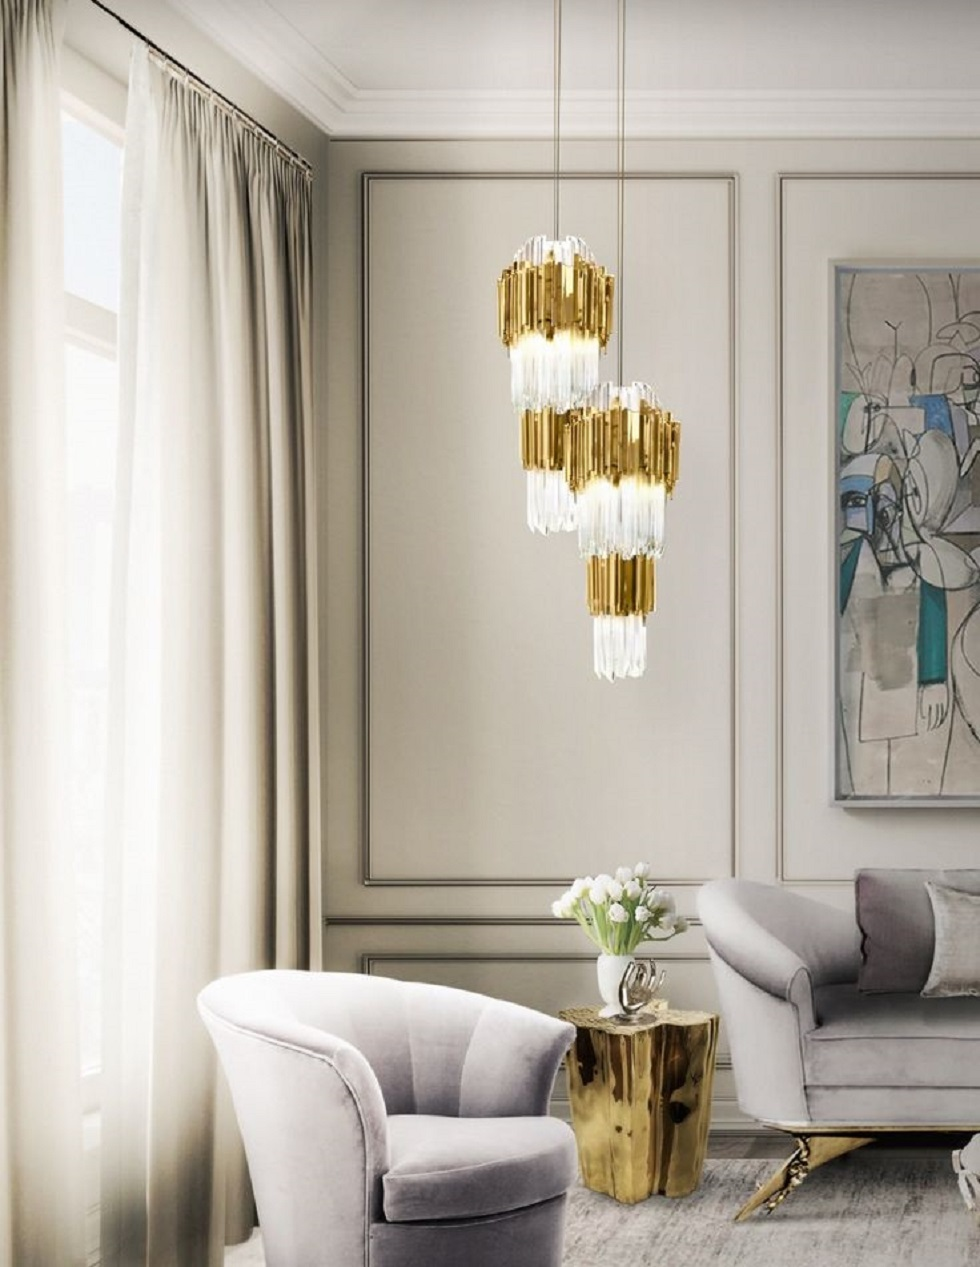 Luxury Lighting Luxury Lighting luxury lighting Luxury Lighting: How to Add Glamour to Your Home Empire Wall 1